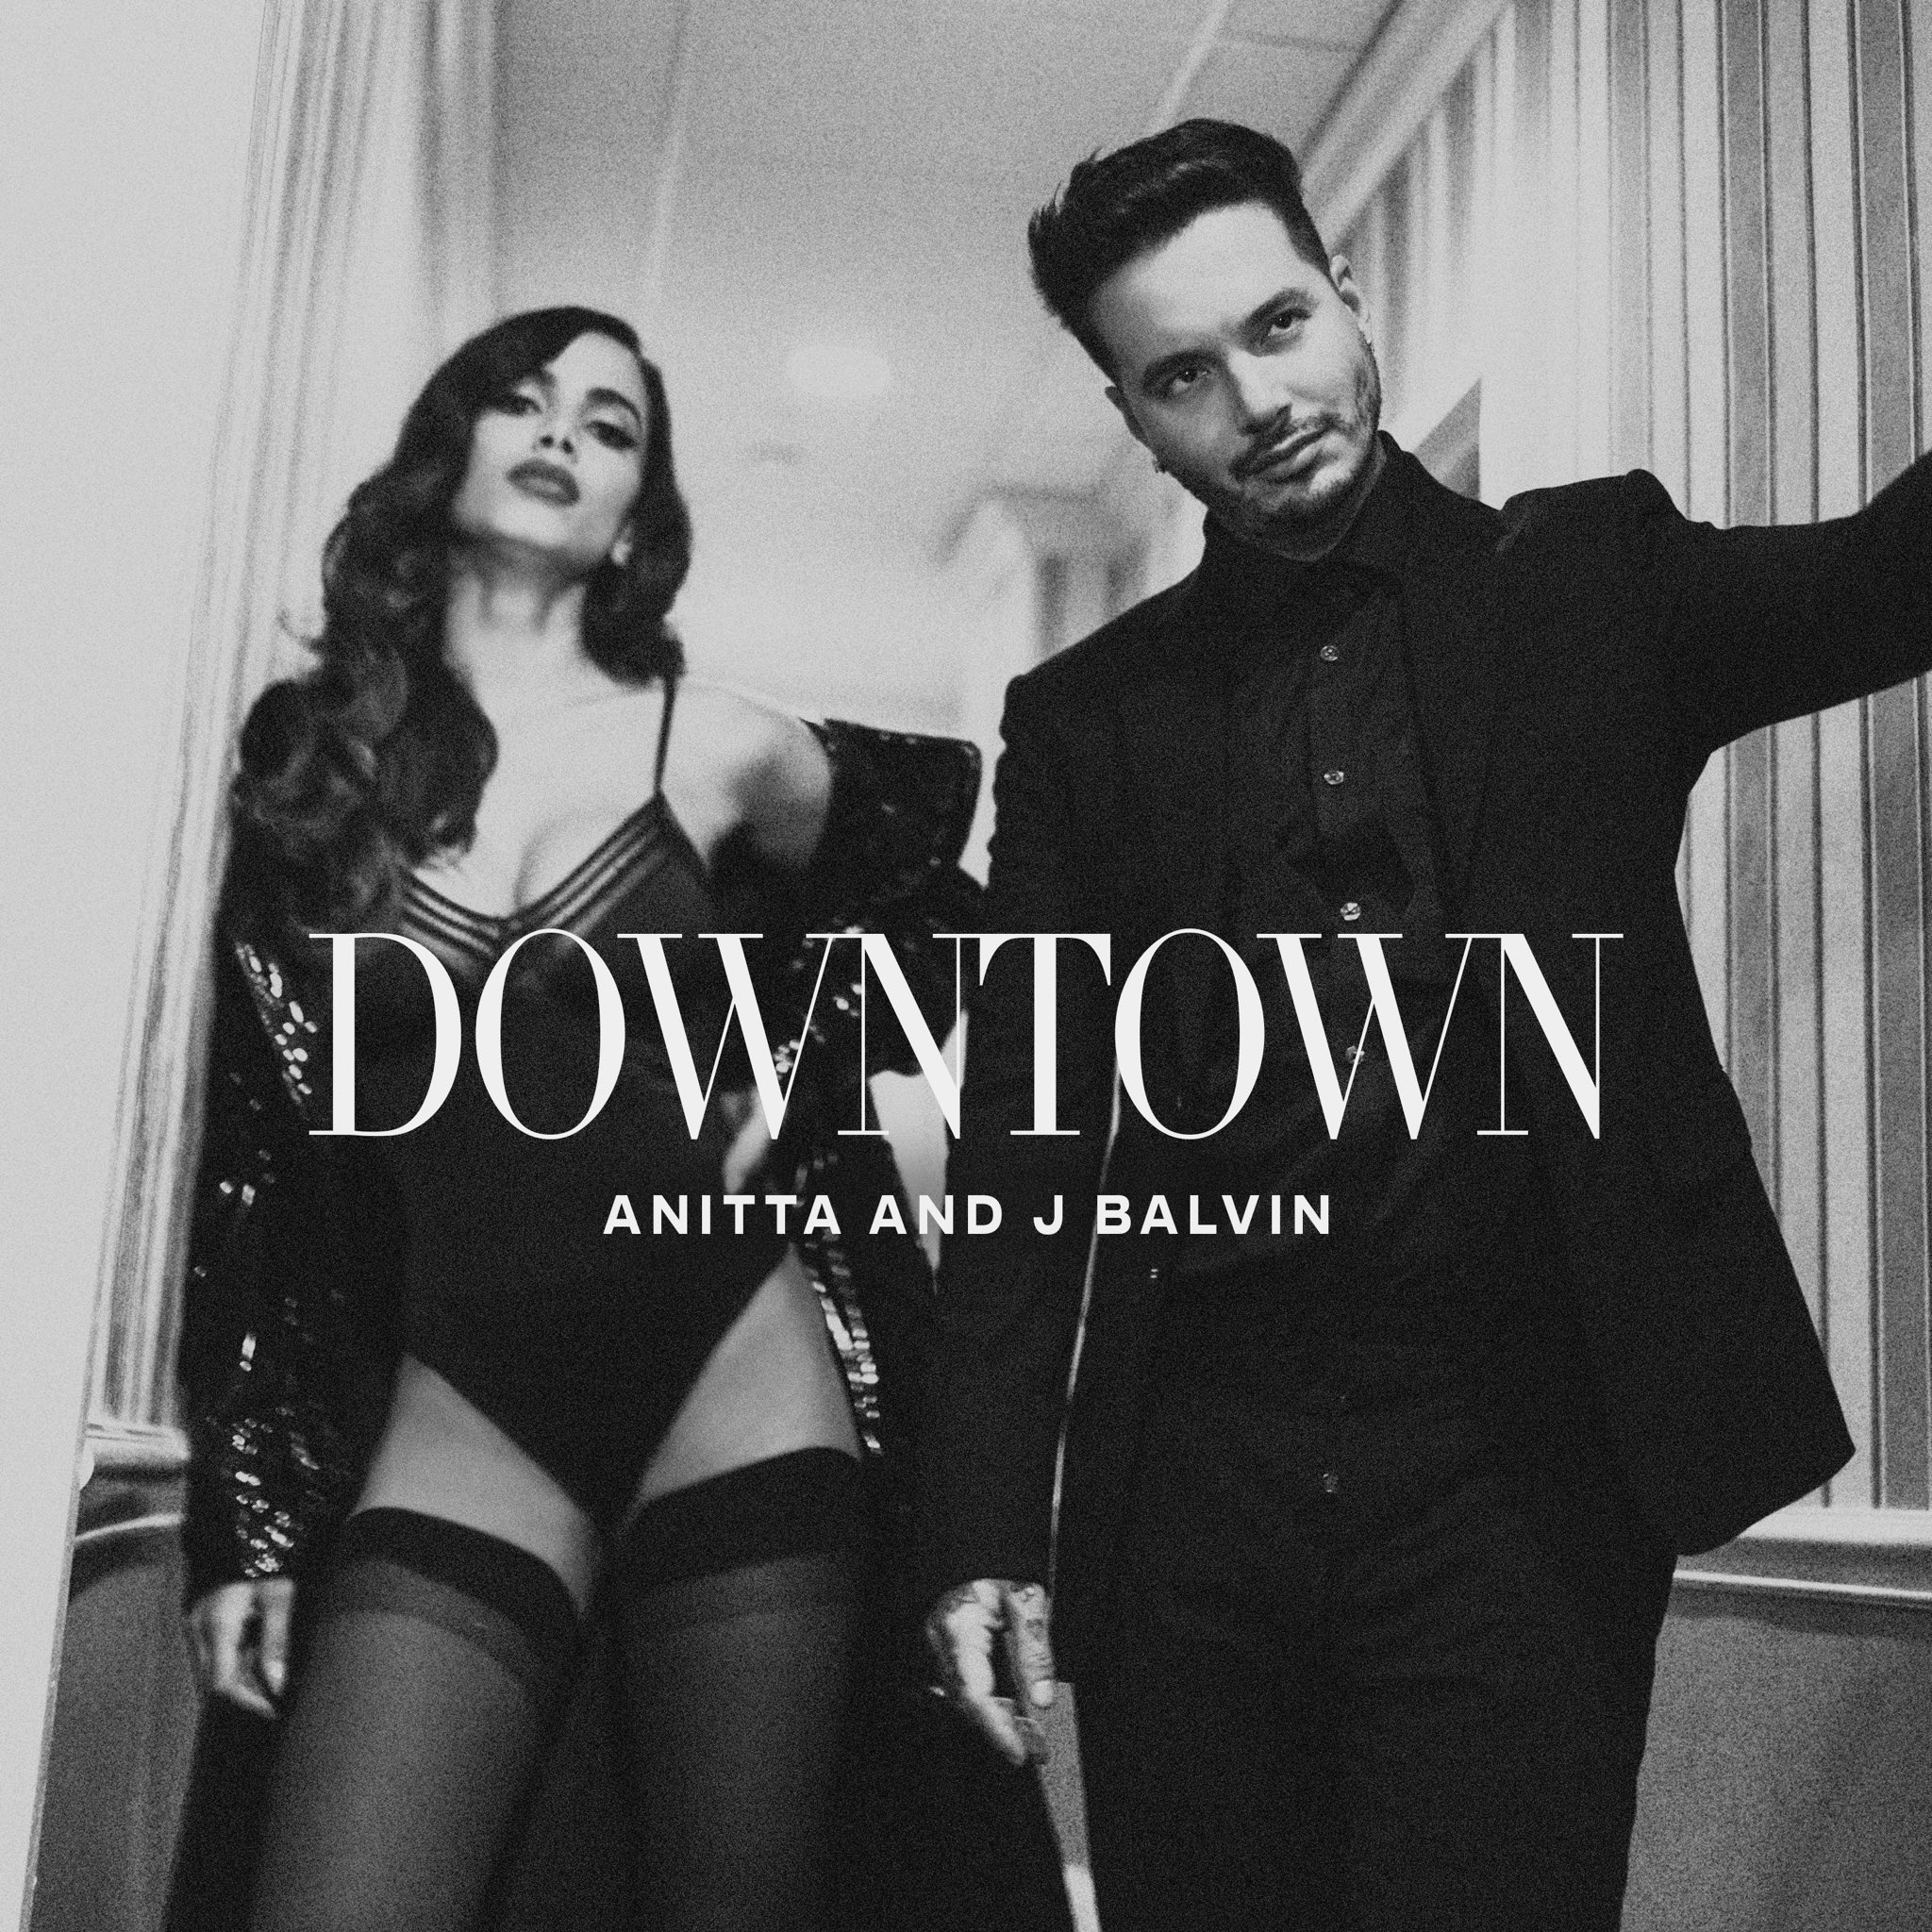 """Downtown"" is available on all streaming platforms �� https://t.co/Db9VTRUNPS https://t.co/yS2O9Pu6DR"